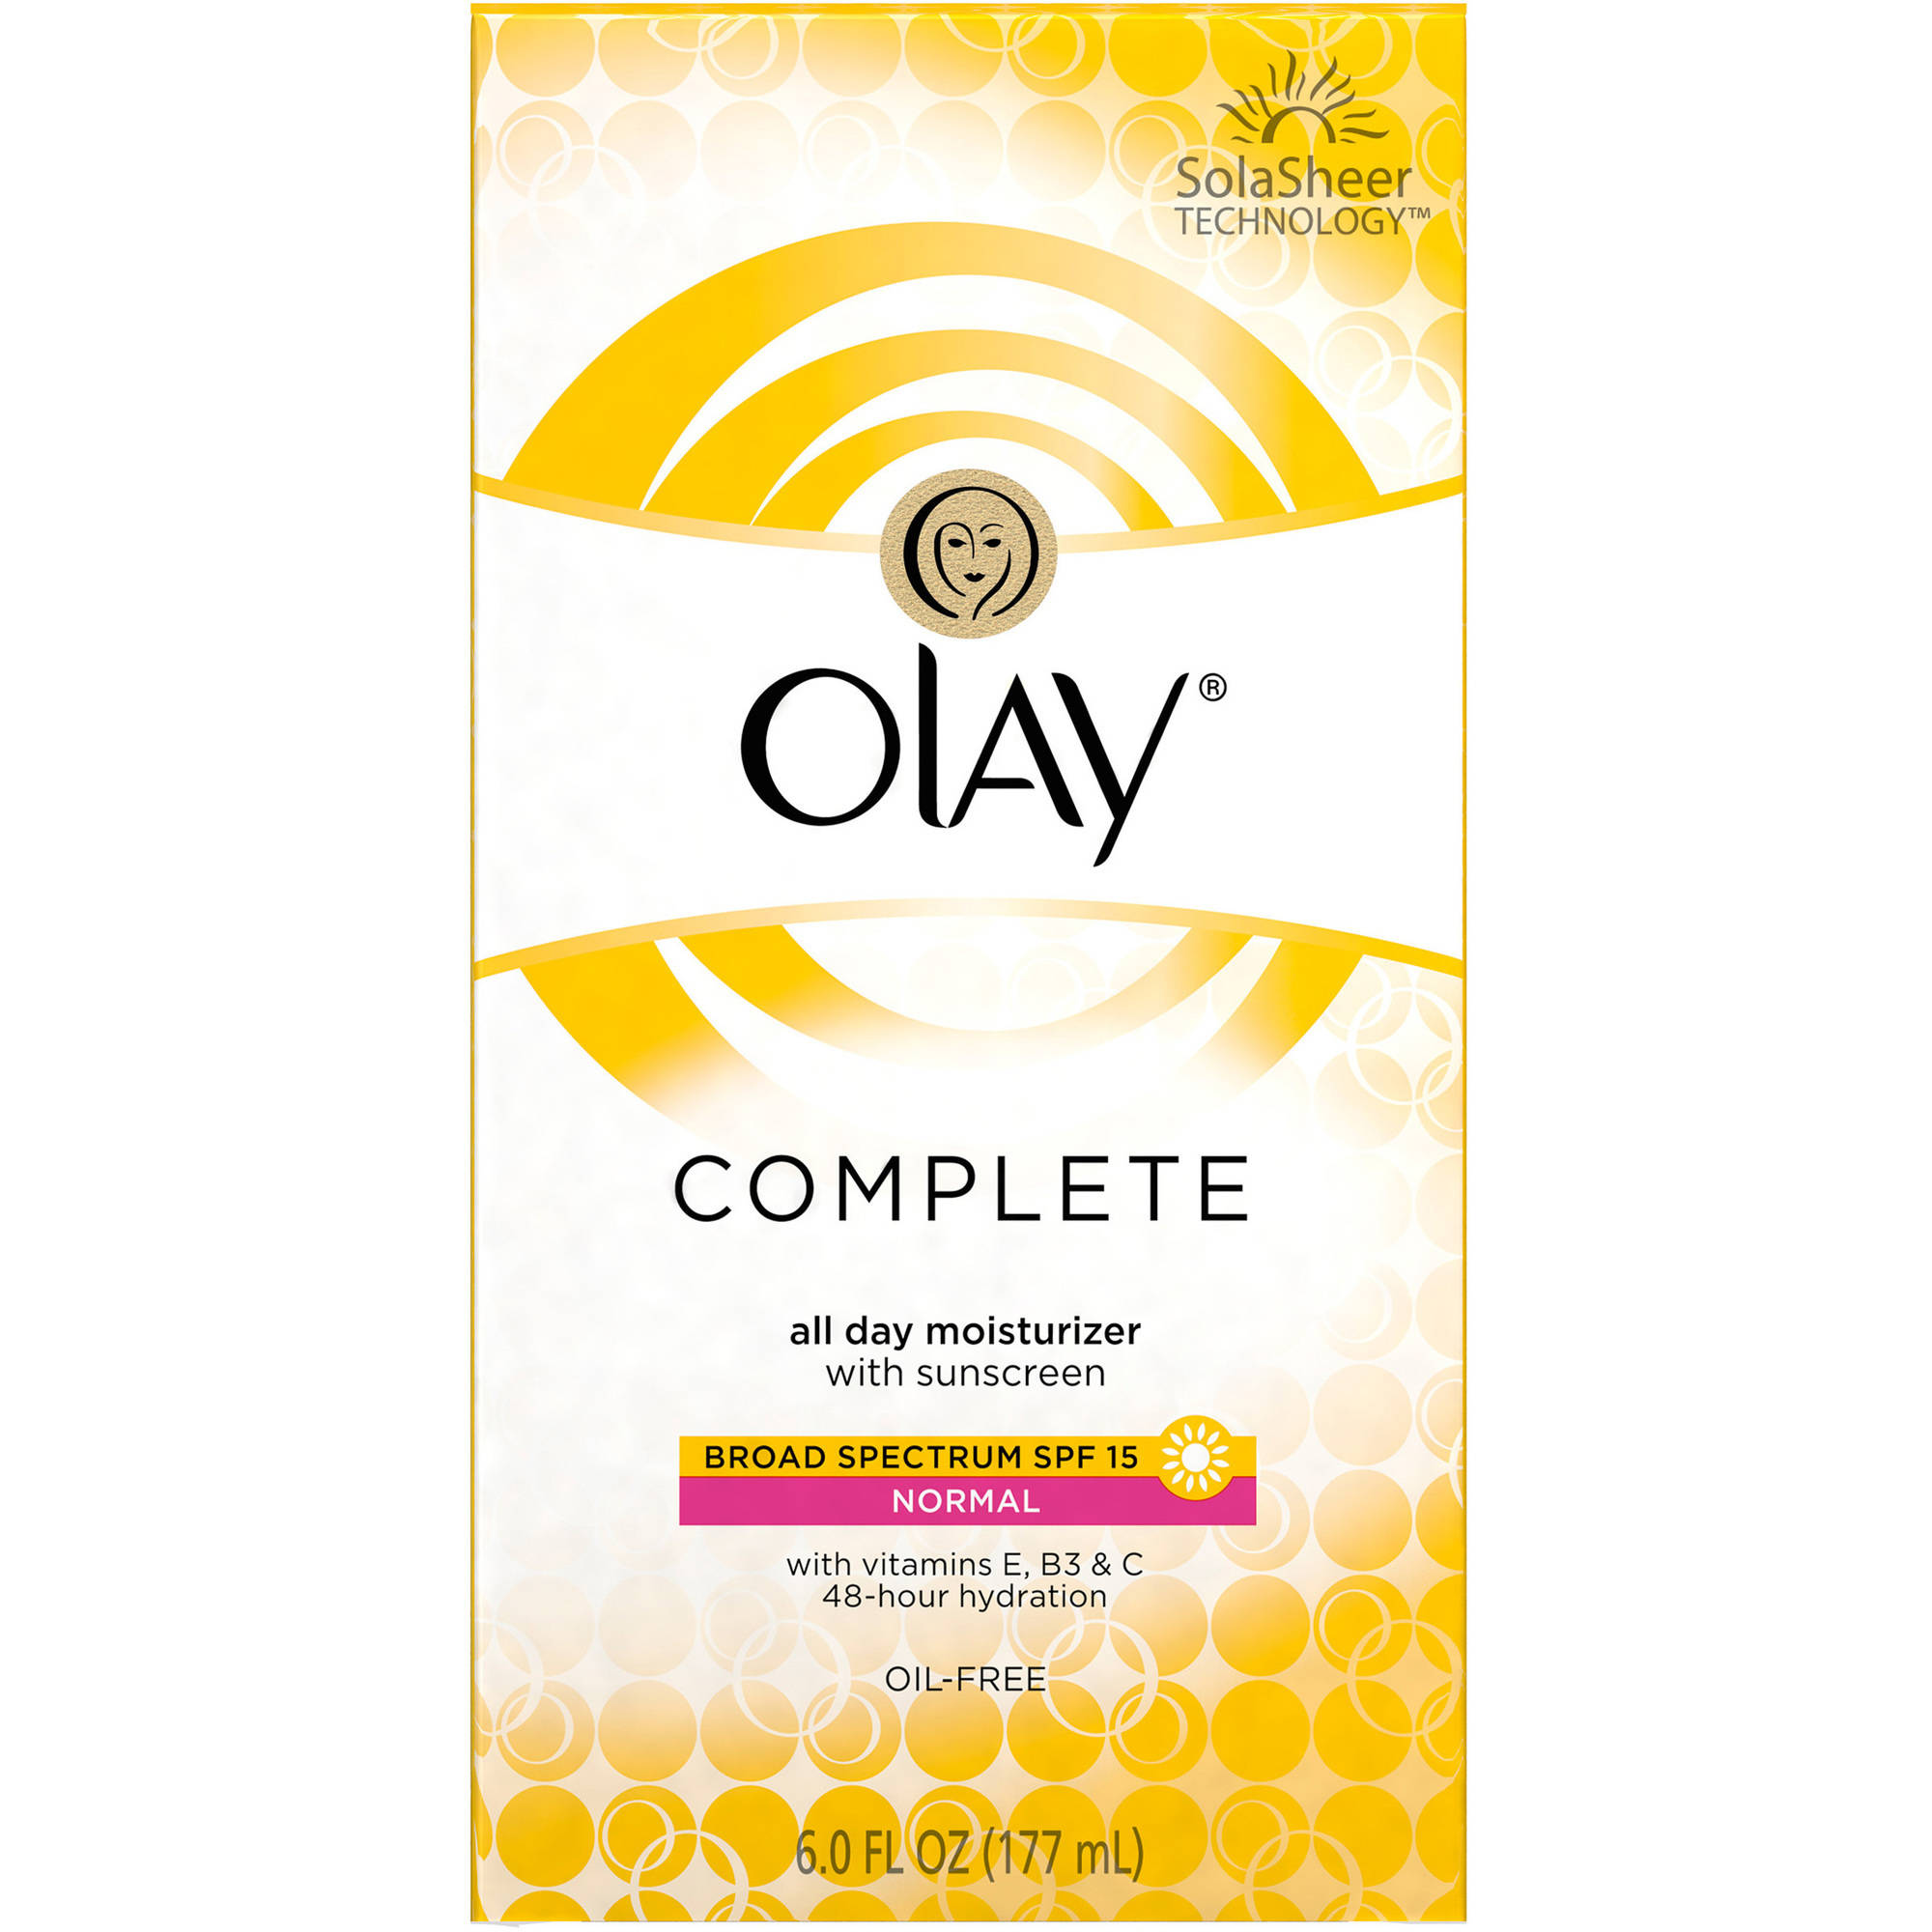 Olay Complete All-Day UV Facial Moisturizer with SPF 15 for Normal Skin, 6 fl. oz.